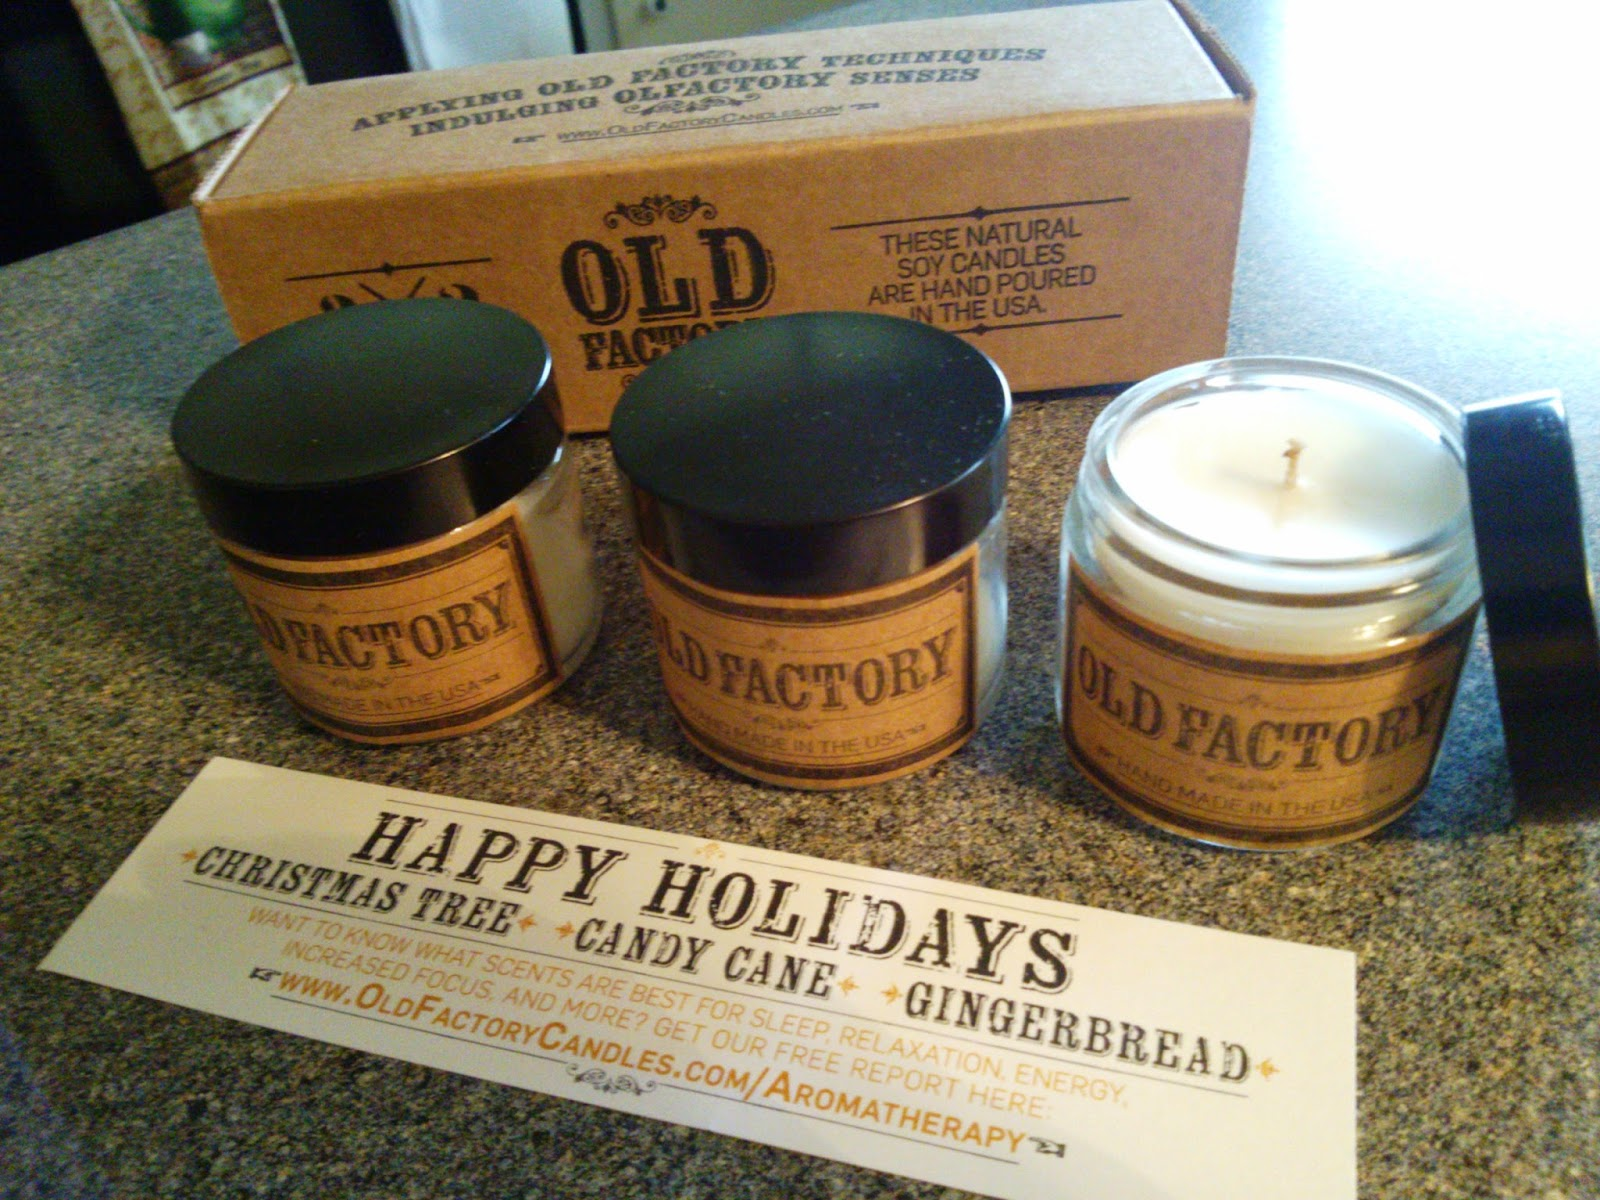 Old Factory Candle Gift Set Review + Giveaway